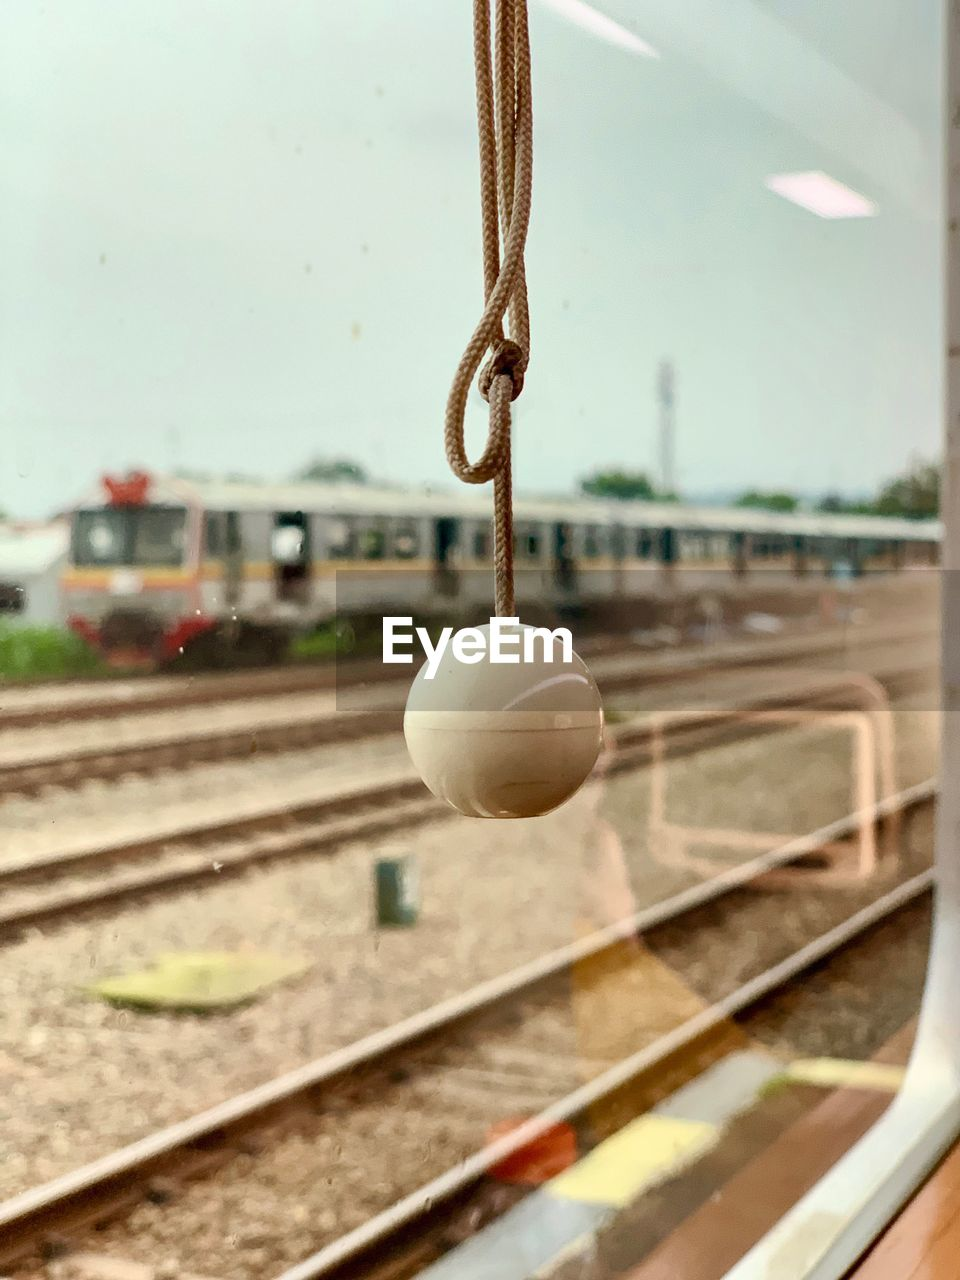 focus on foreground, rail transportation, mode of transportation, track, railroad track, no people, transportation, day, close-up, hanging, vehicle interior, window, train, outdoors, ball, glass - material, public transportation, car, sport